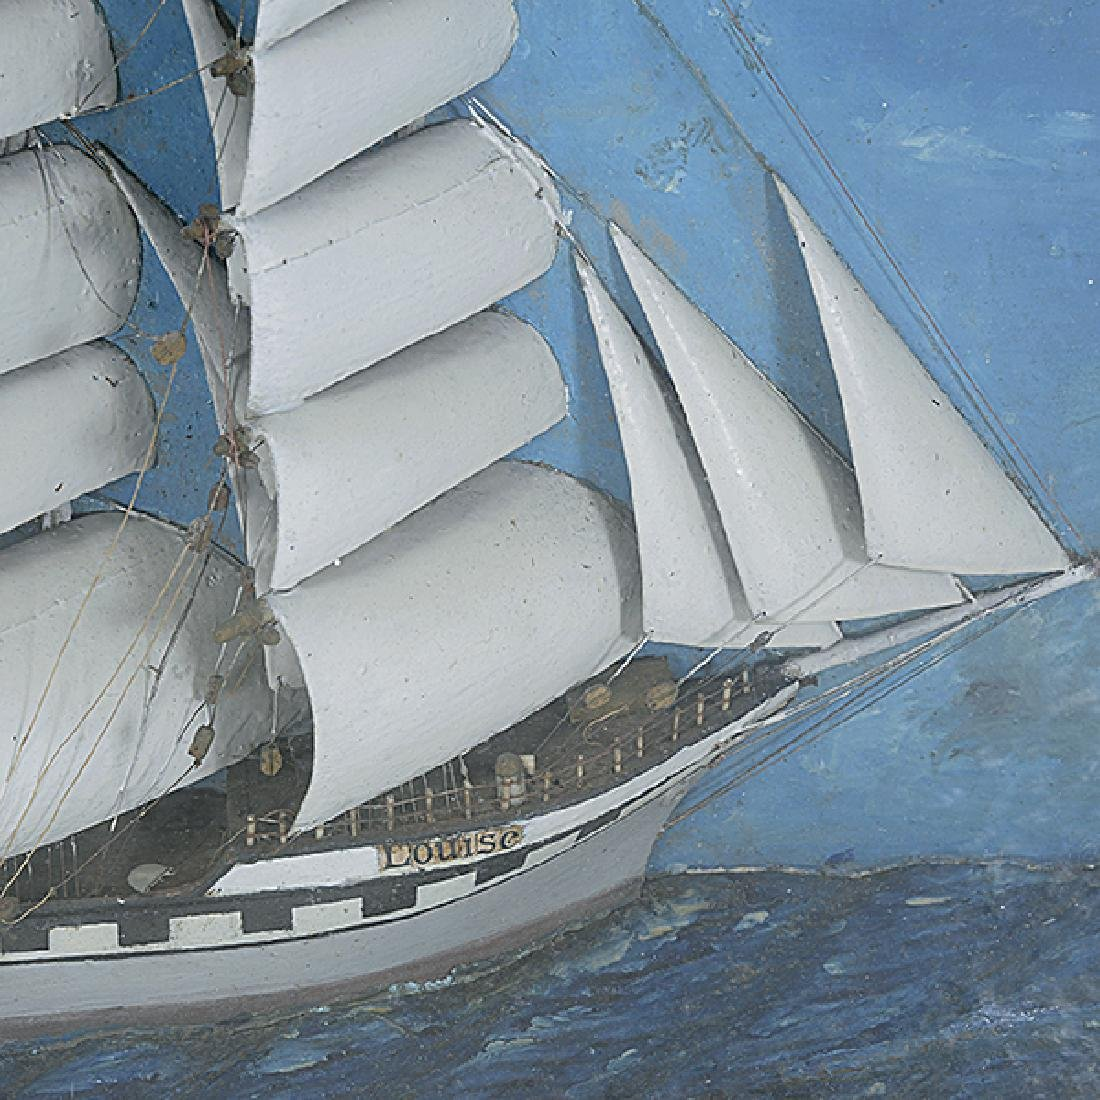 Diorama of the Ship Louise - 4